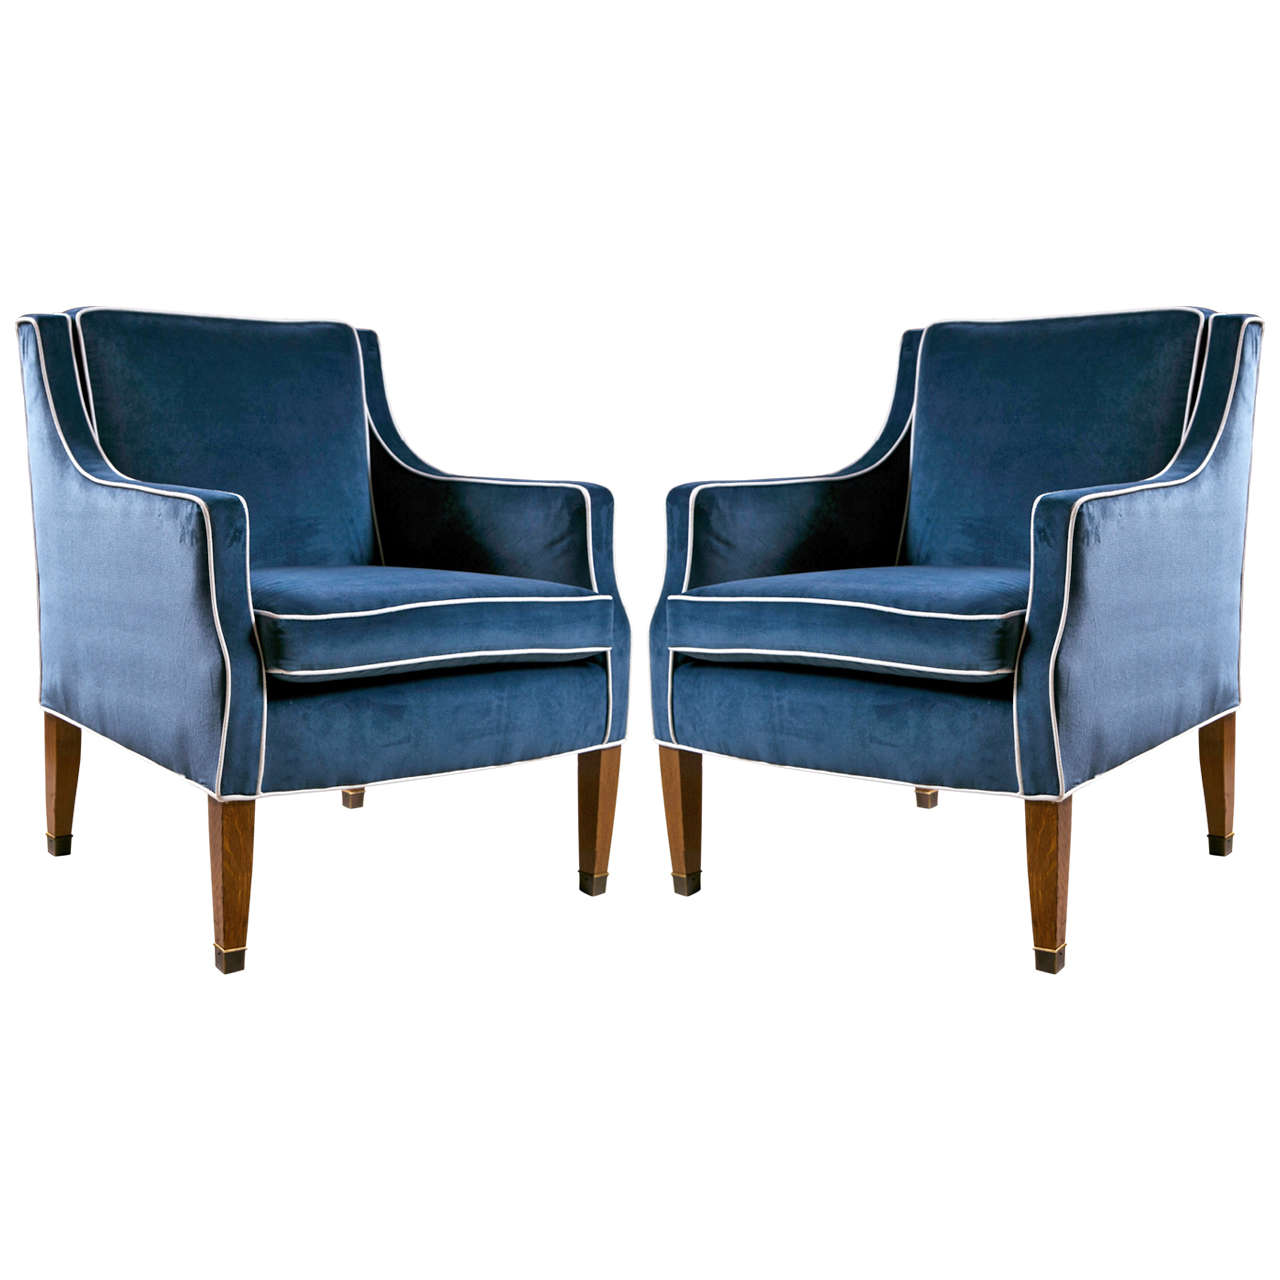 Velvet Club Chair Mid Century Club Chairs With Blue Velvet Upholstery At 1stdibs